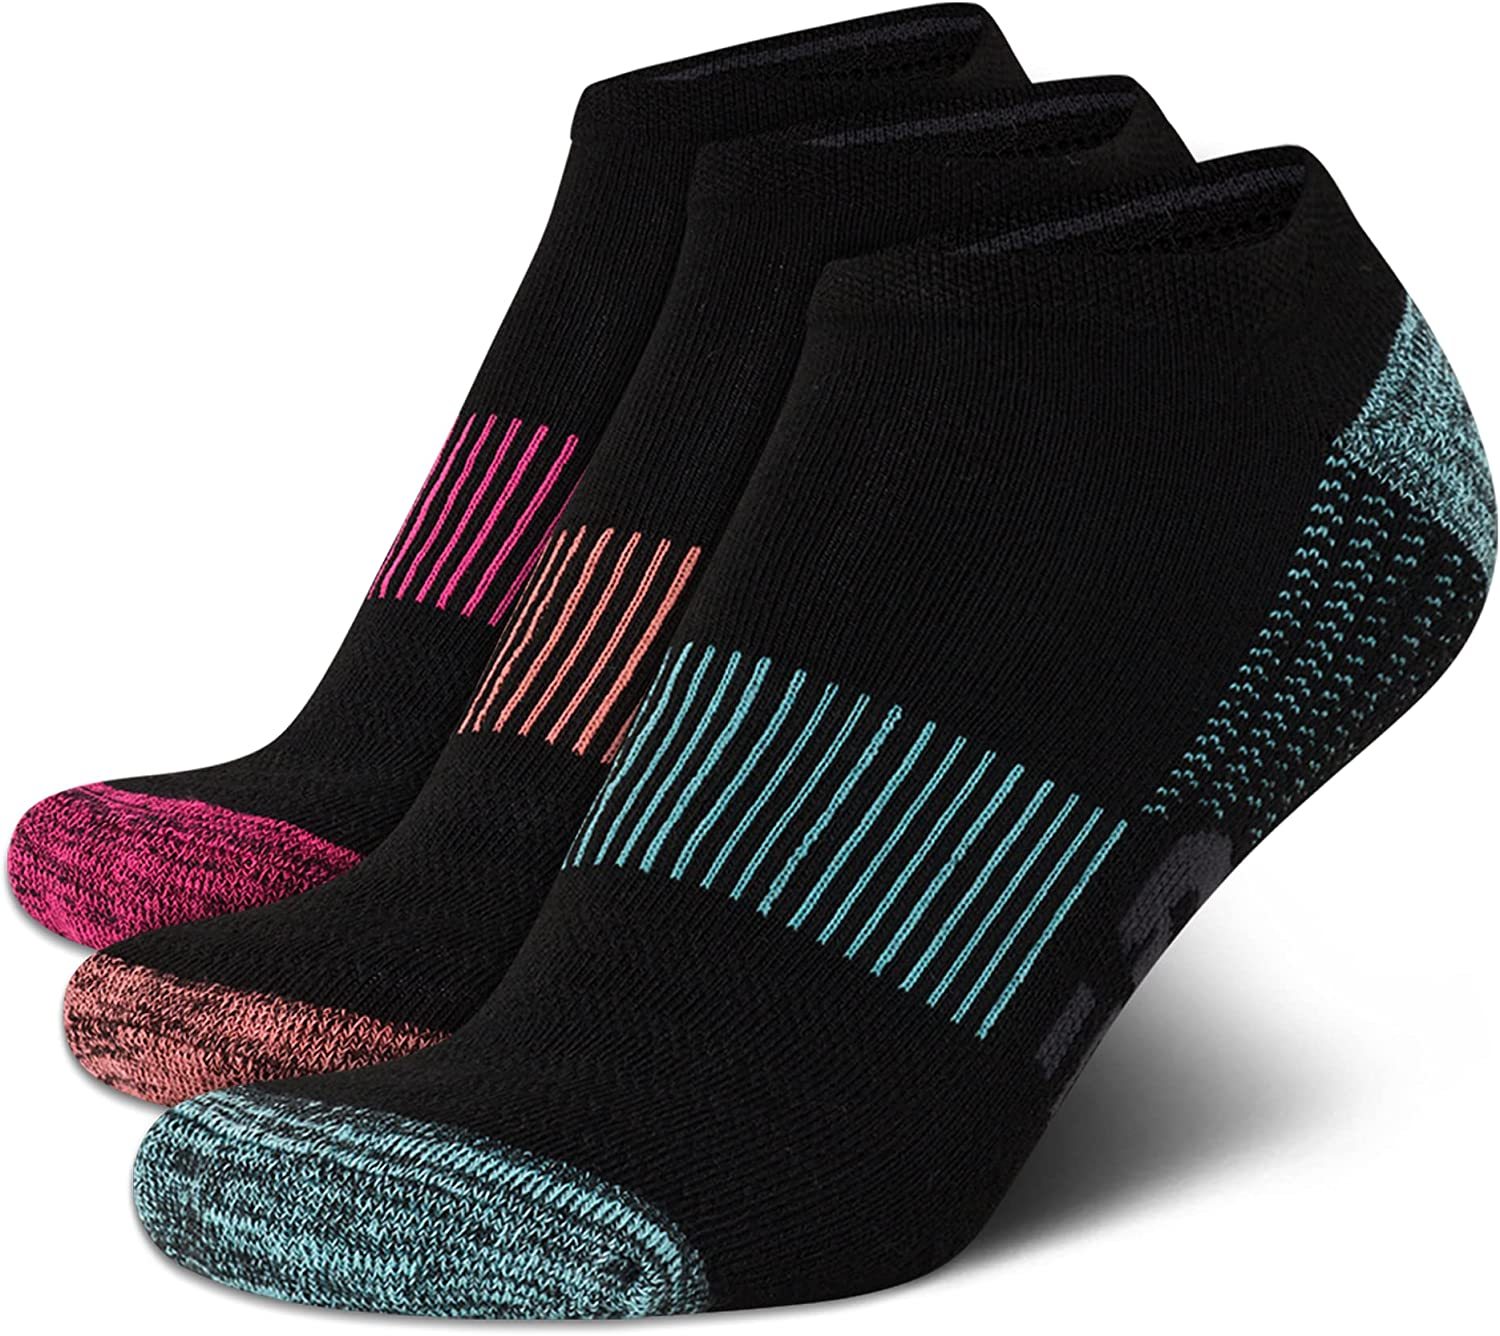 New Balance Women's Big and Tall Socks - Athletic Performance No Show Ankle Sock Liners (3 Pack)